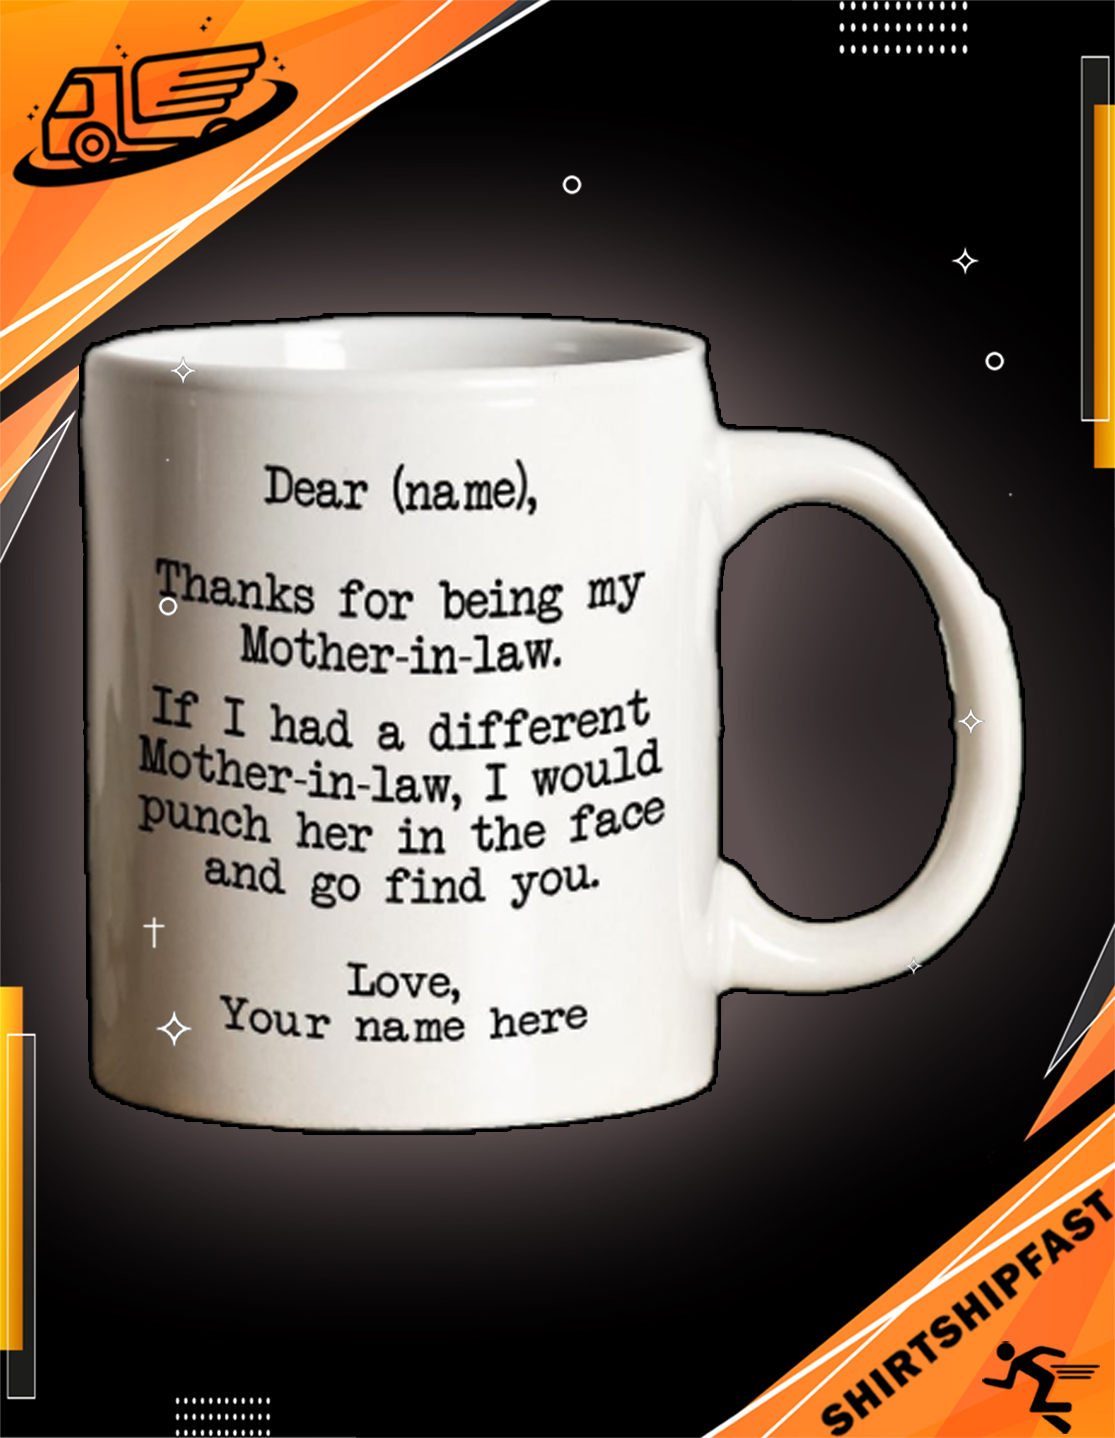 Personalized Thanks for being my mother-in-law mug - Picture 3